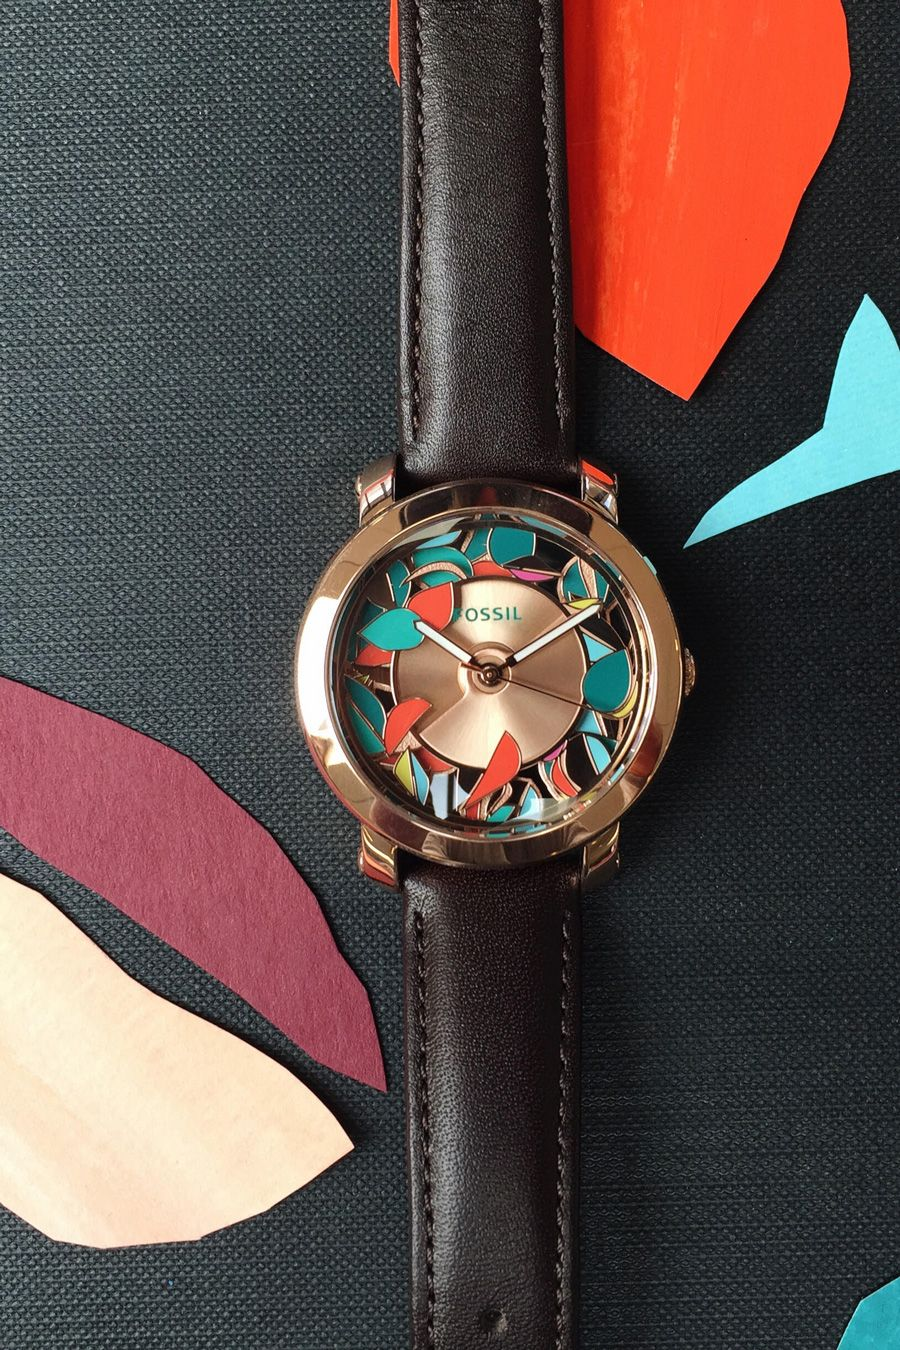 The Limited Edition Holiday Kaleido Watch is made for the curious at heart